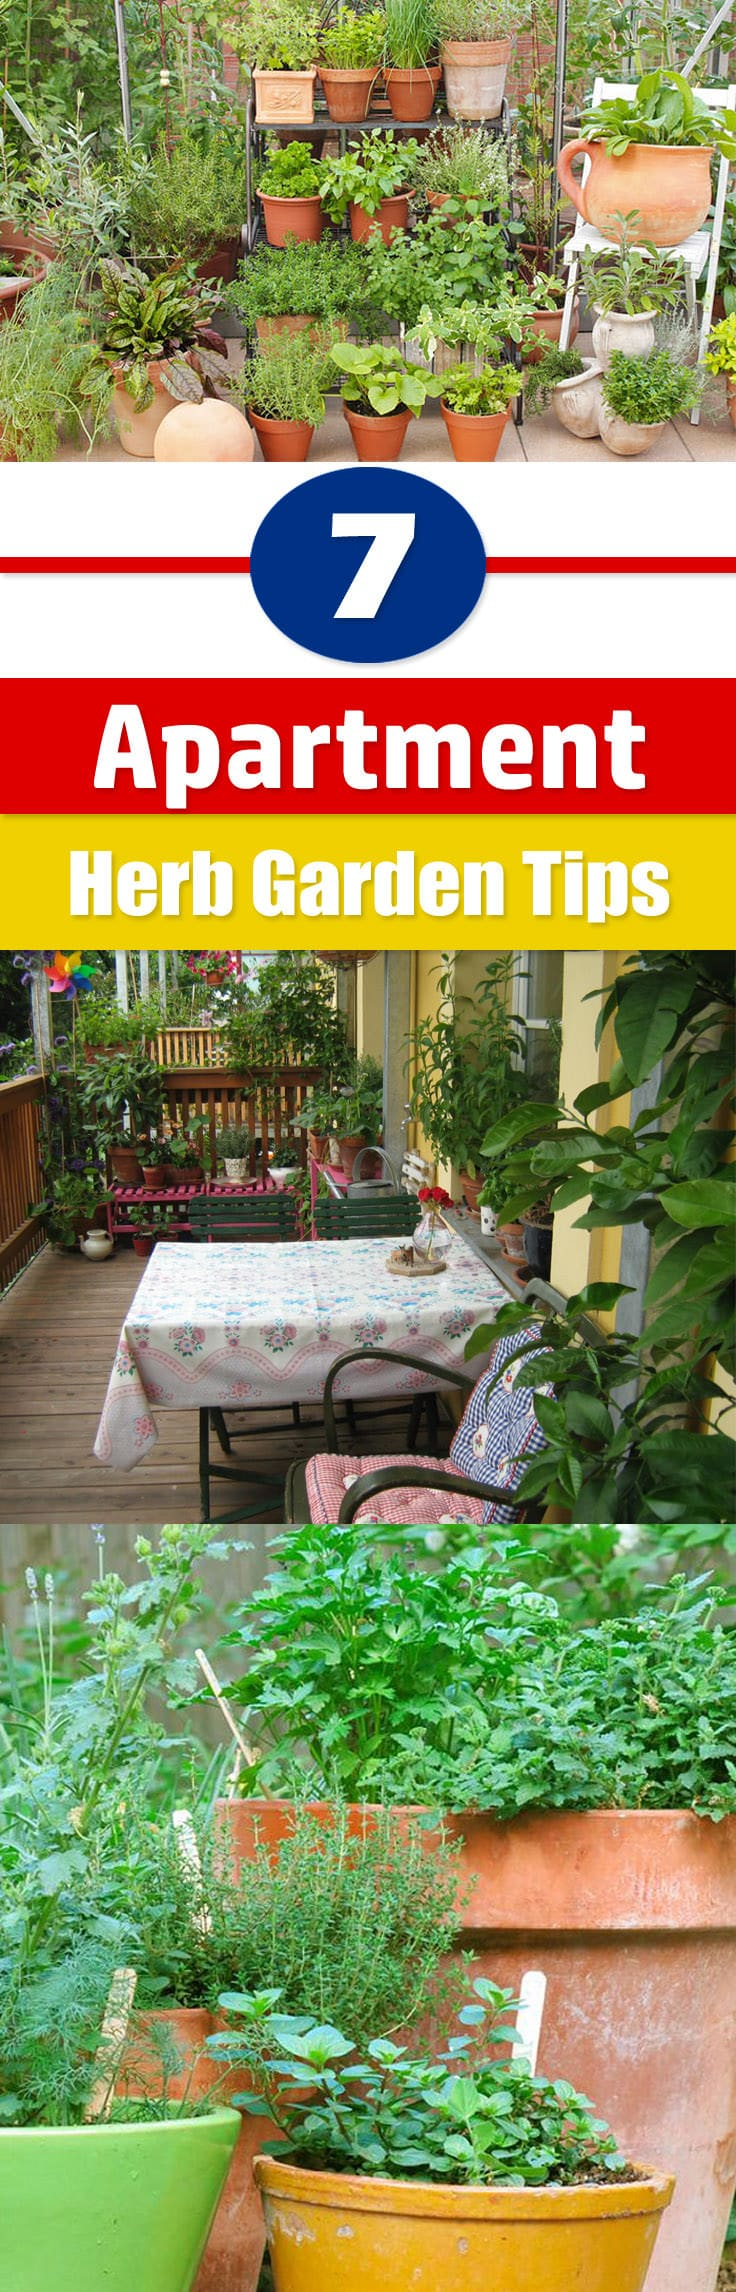 balcony appartment herb garden tips